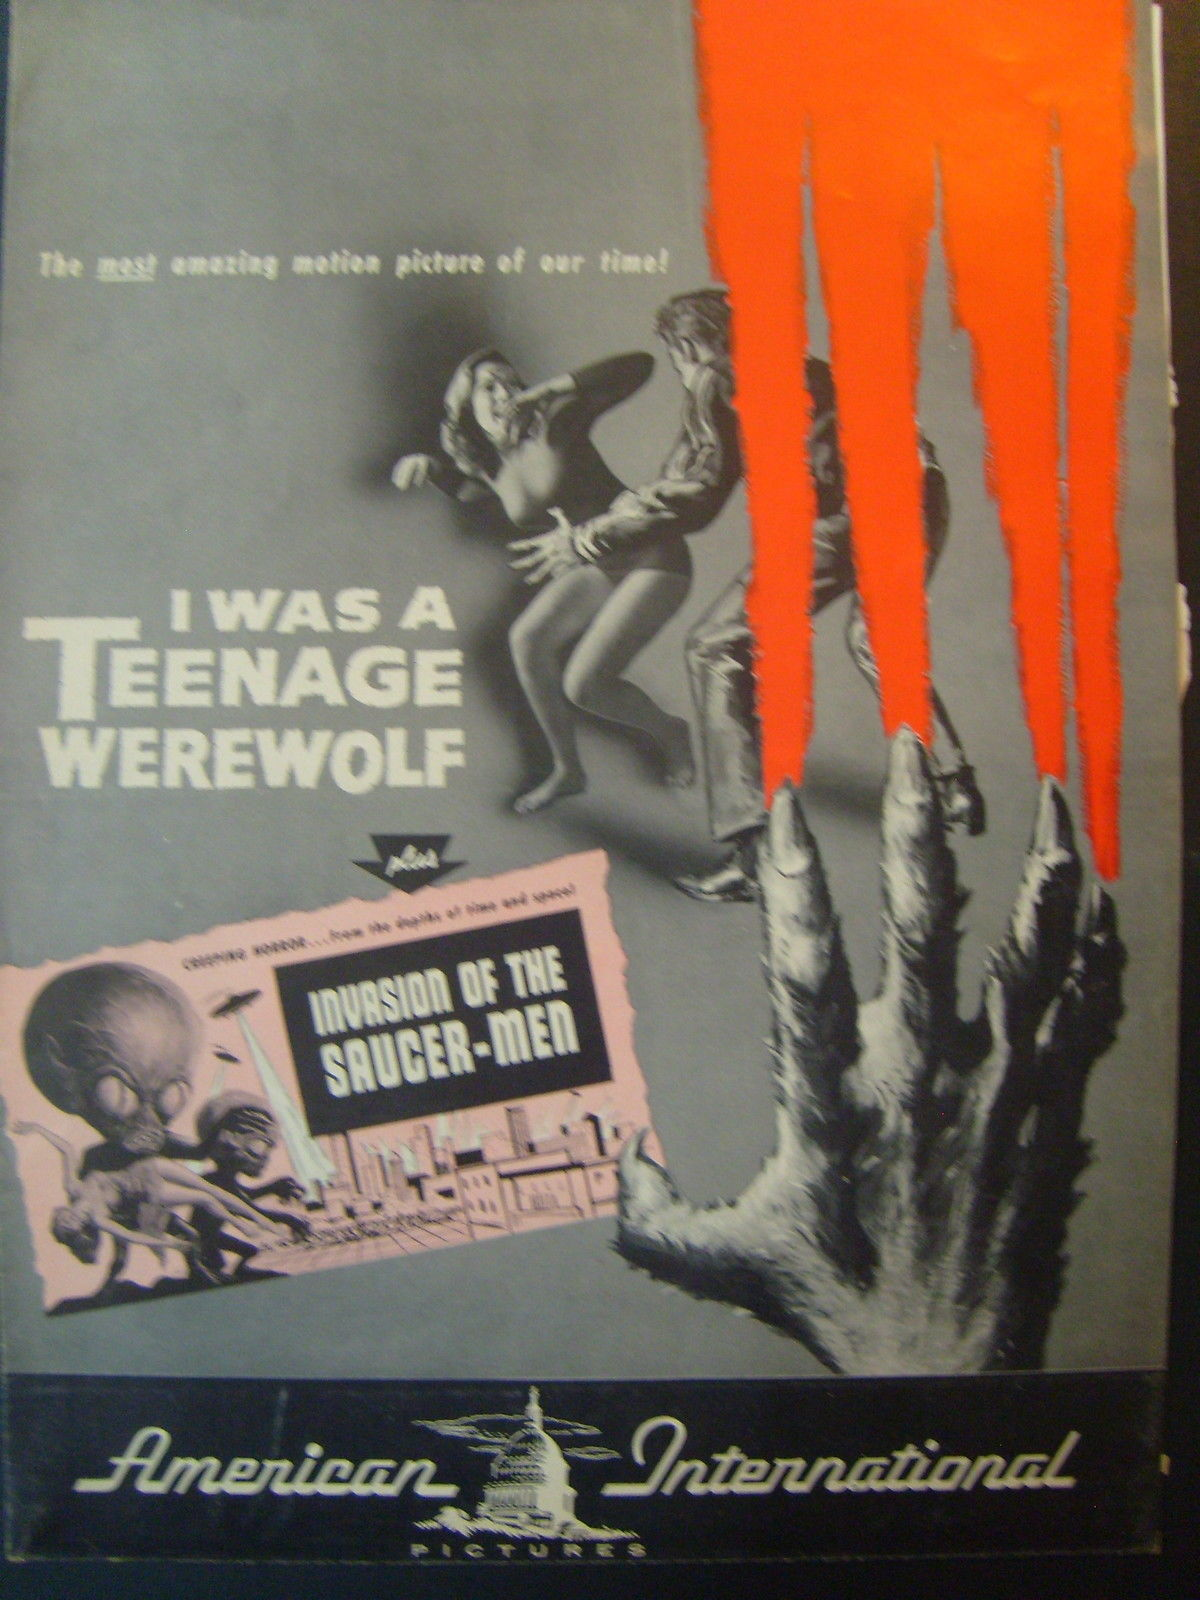 MICHAEL LANDON (TEENAGE WEREWOLF & INVASION OF THE SAUCER MEN) MOVIE PRESSBOOK